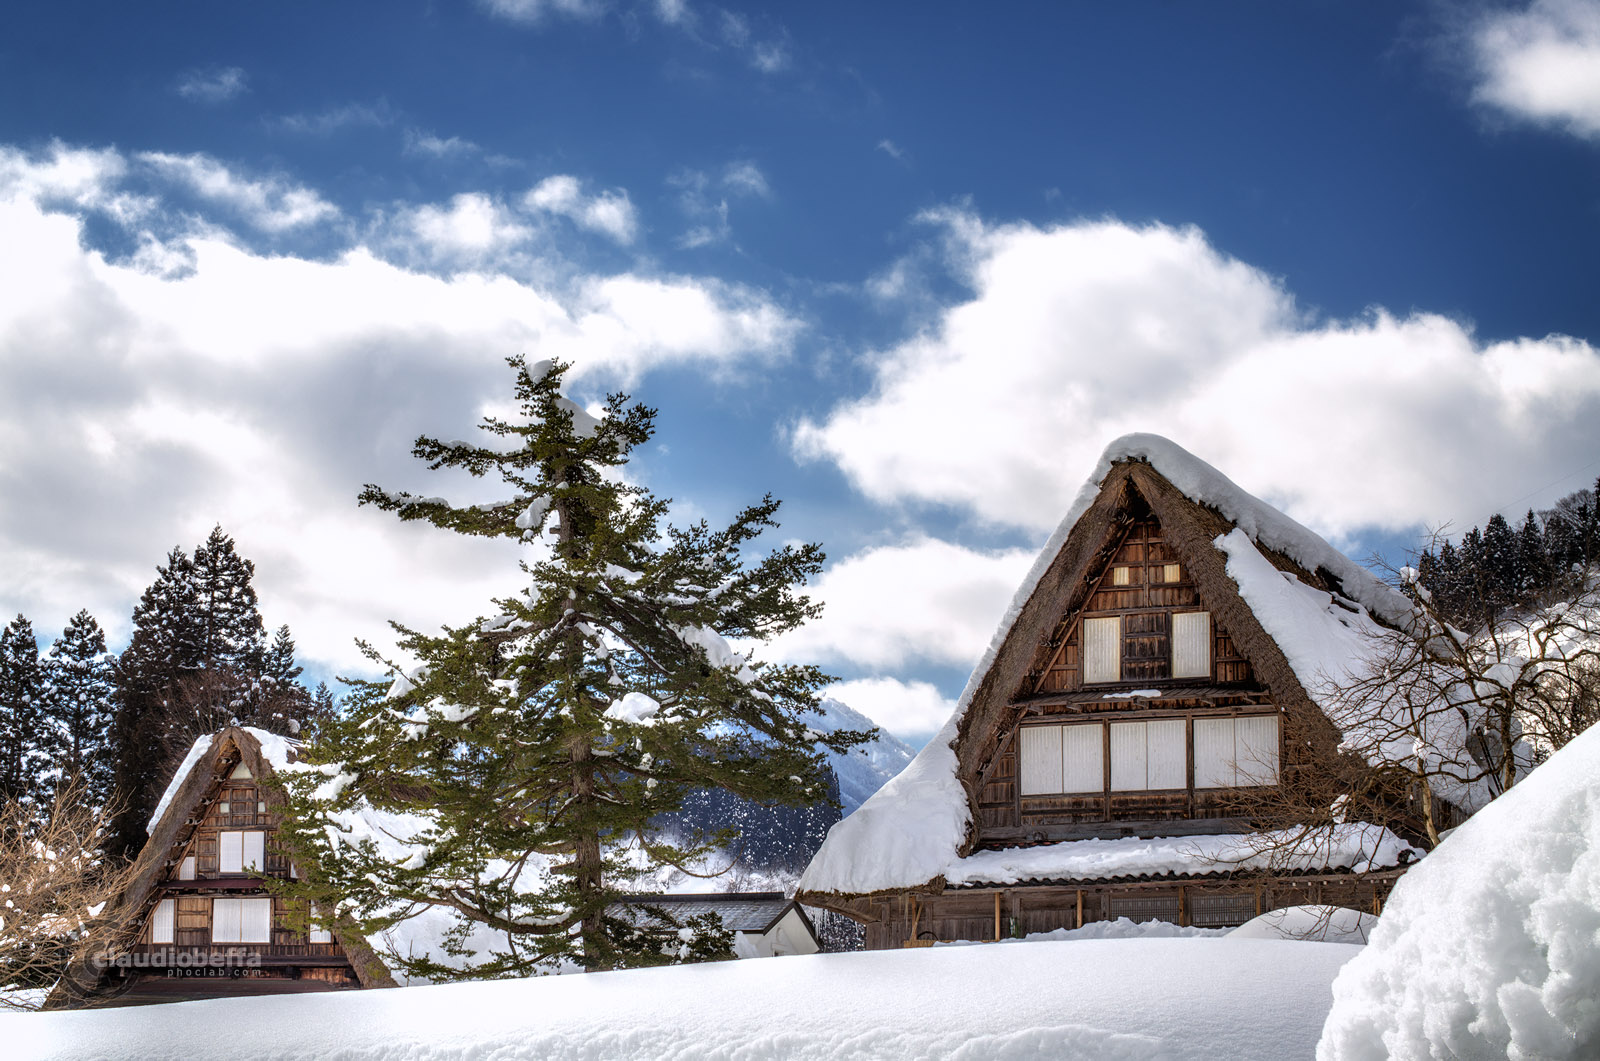 Snow, Ainokura, Gassho, Farmhouse, Landscape, Mountain, Sky, Clouds, Gokayama, Toyama, Winter, HDR, Pentax, Japan